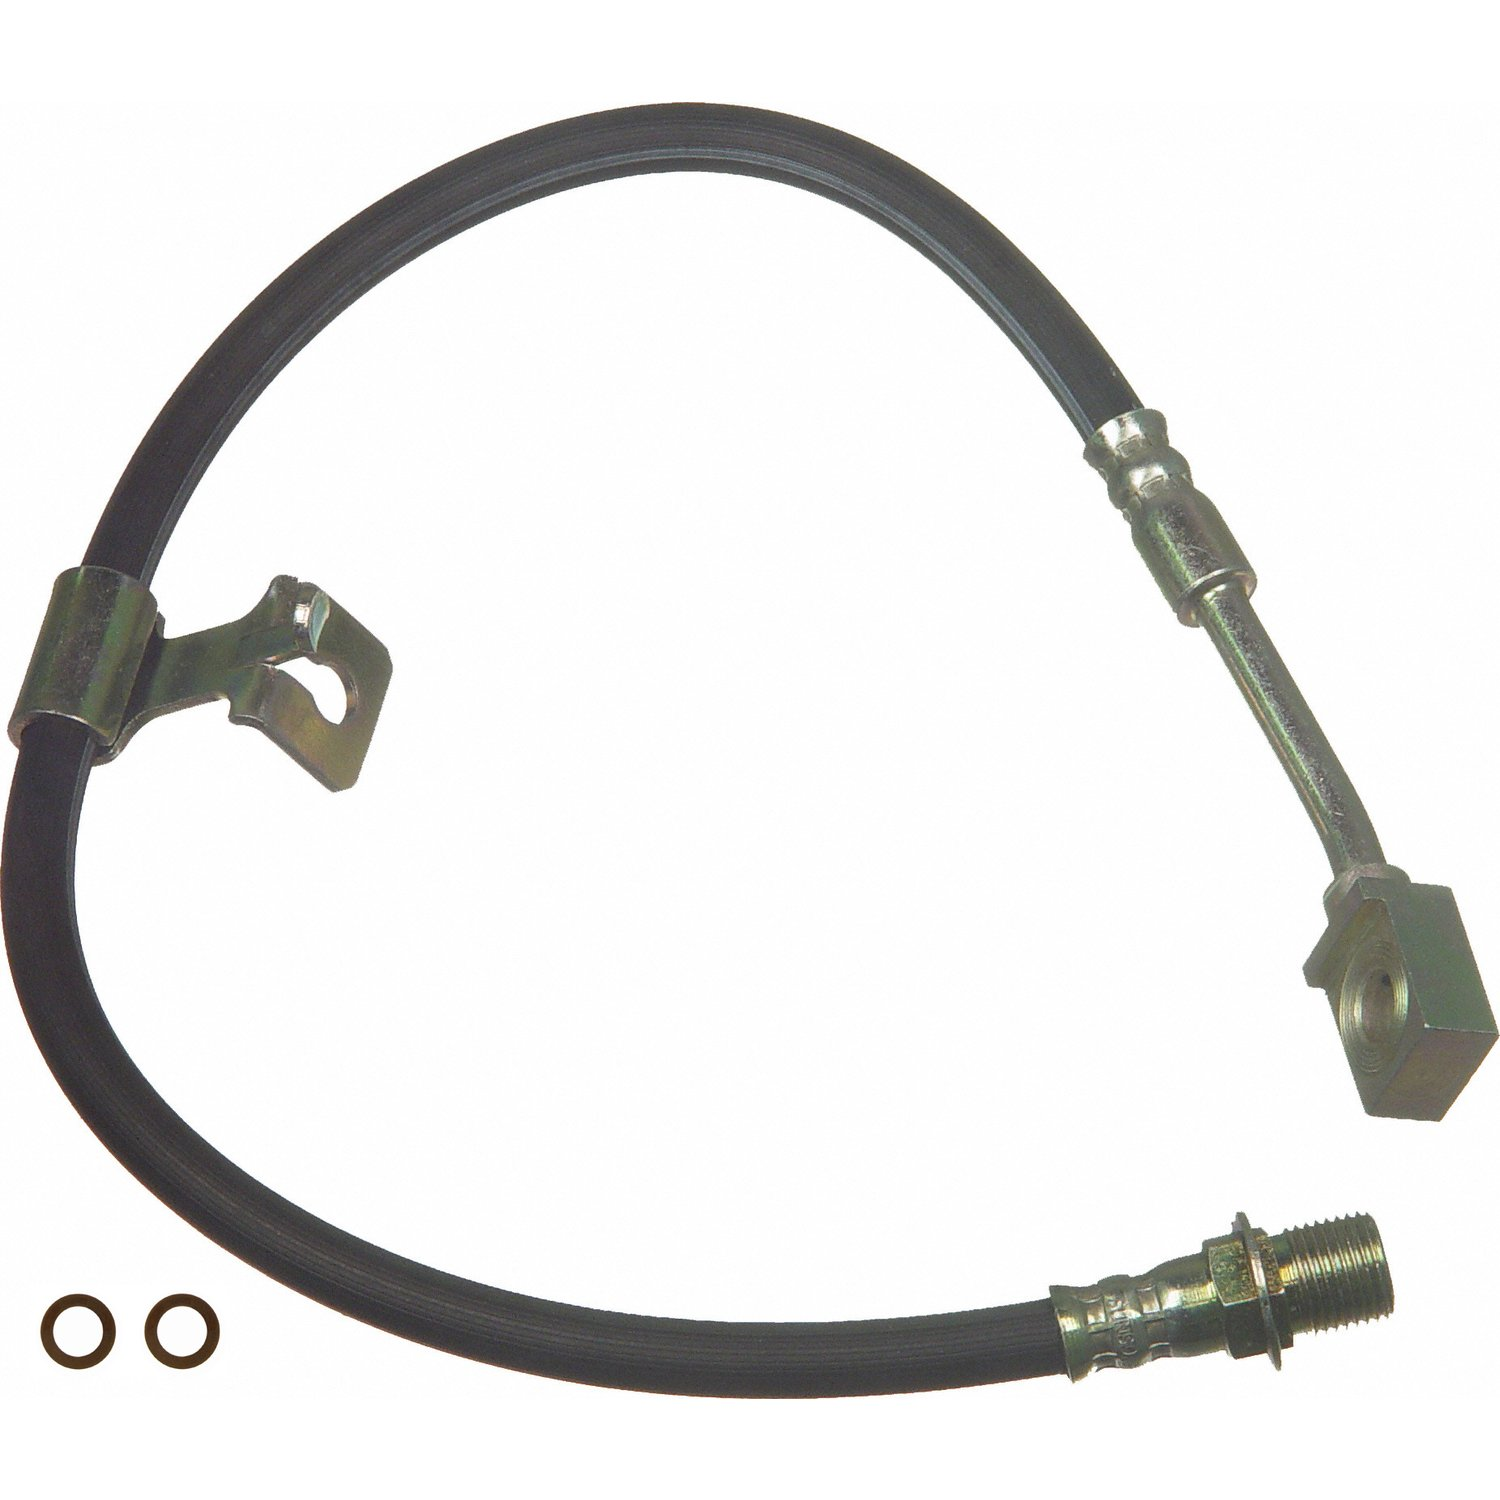 BH Fit Brake Hose Front Right BH36957 H36957 Chevrolet GMC Free Shipping